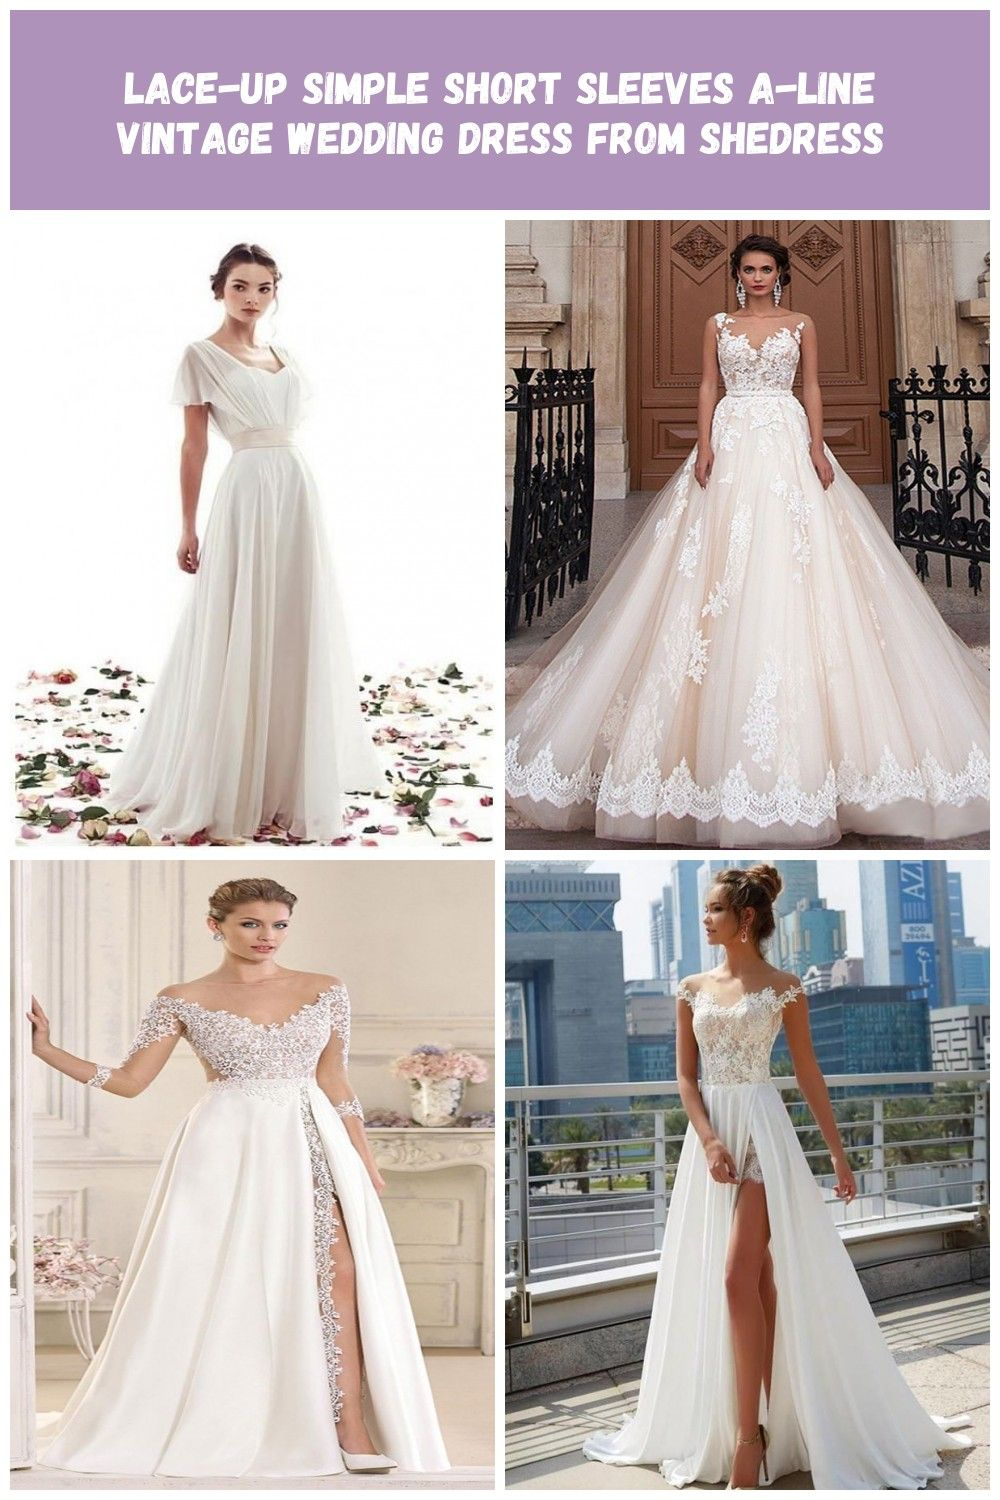 Lace Up Simple Short Sleeves A Line Vintage Wedding Dress Shedress Online Store Powere Wedding Dresses Lace Colored Wedding Dresses Wedding Dresses Vintage